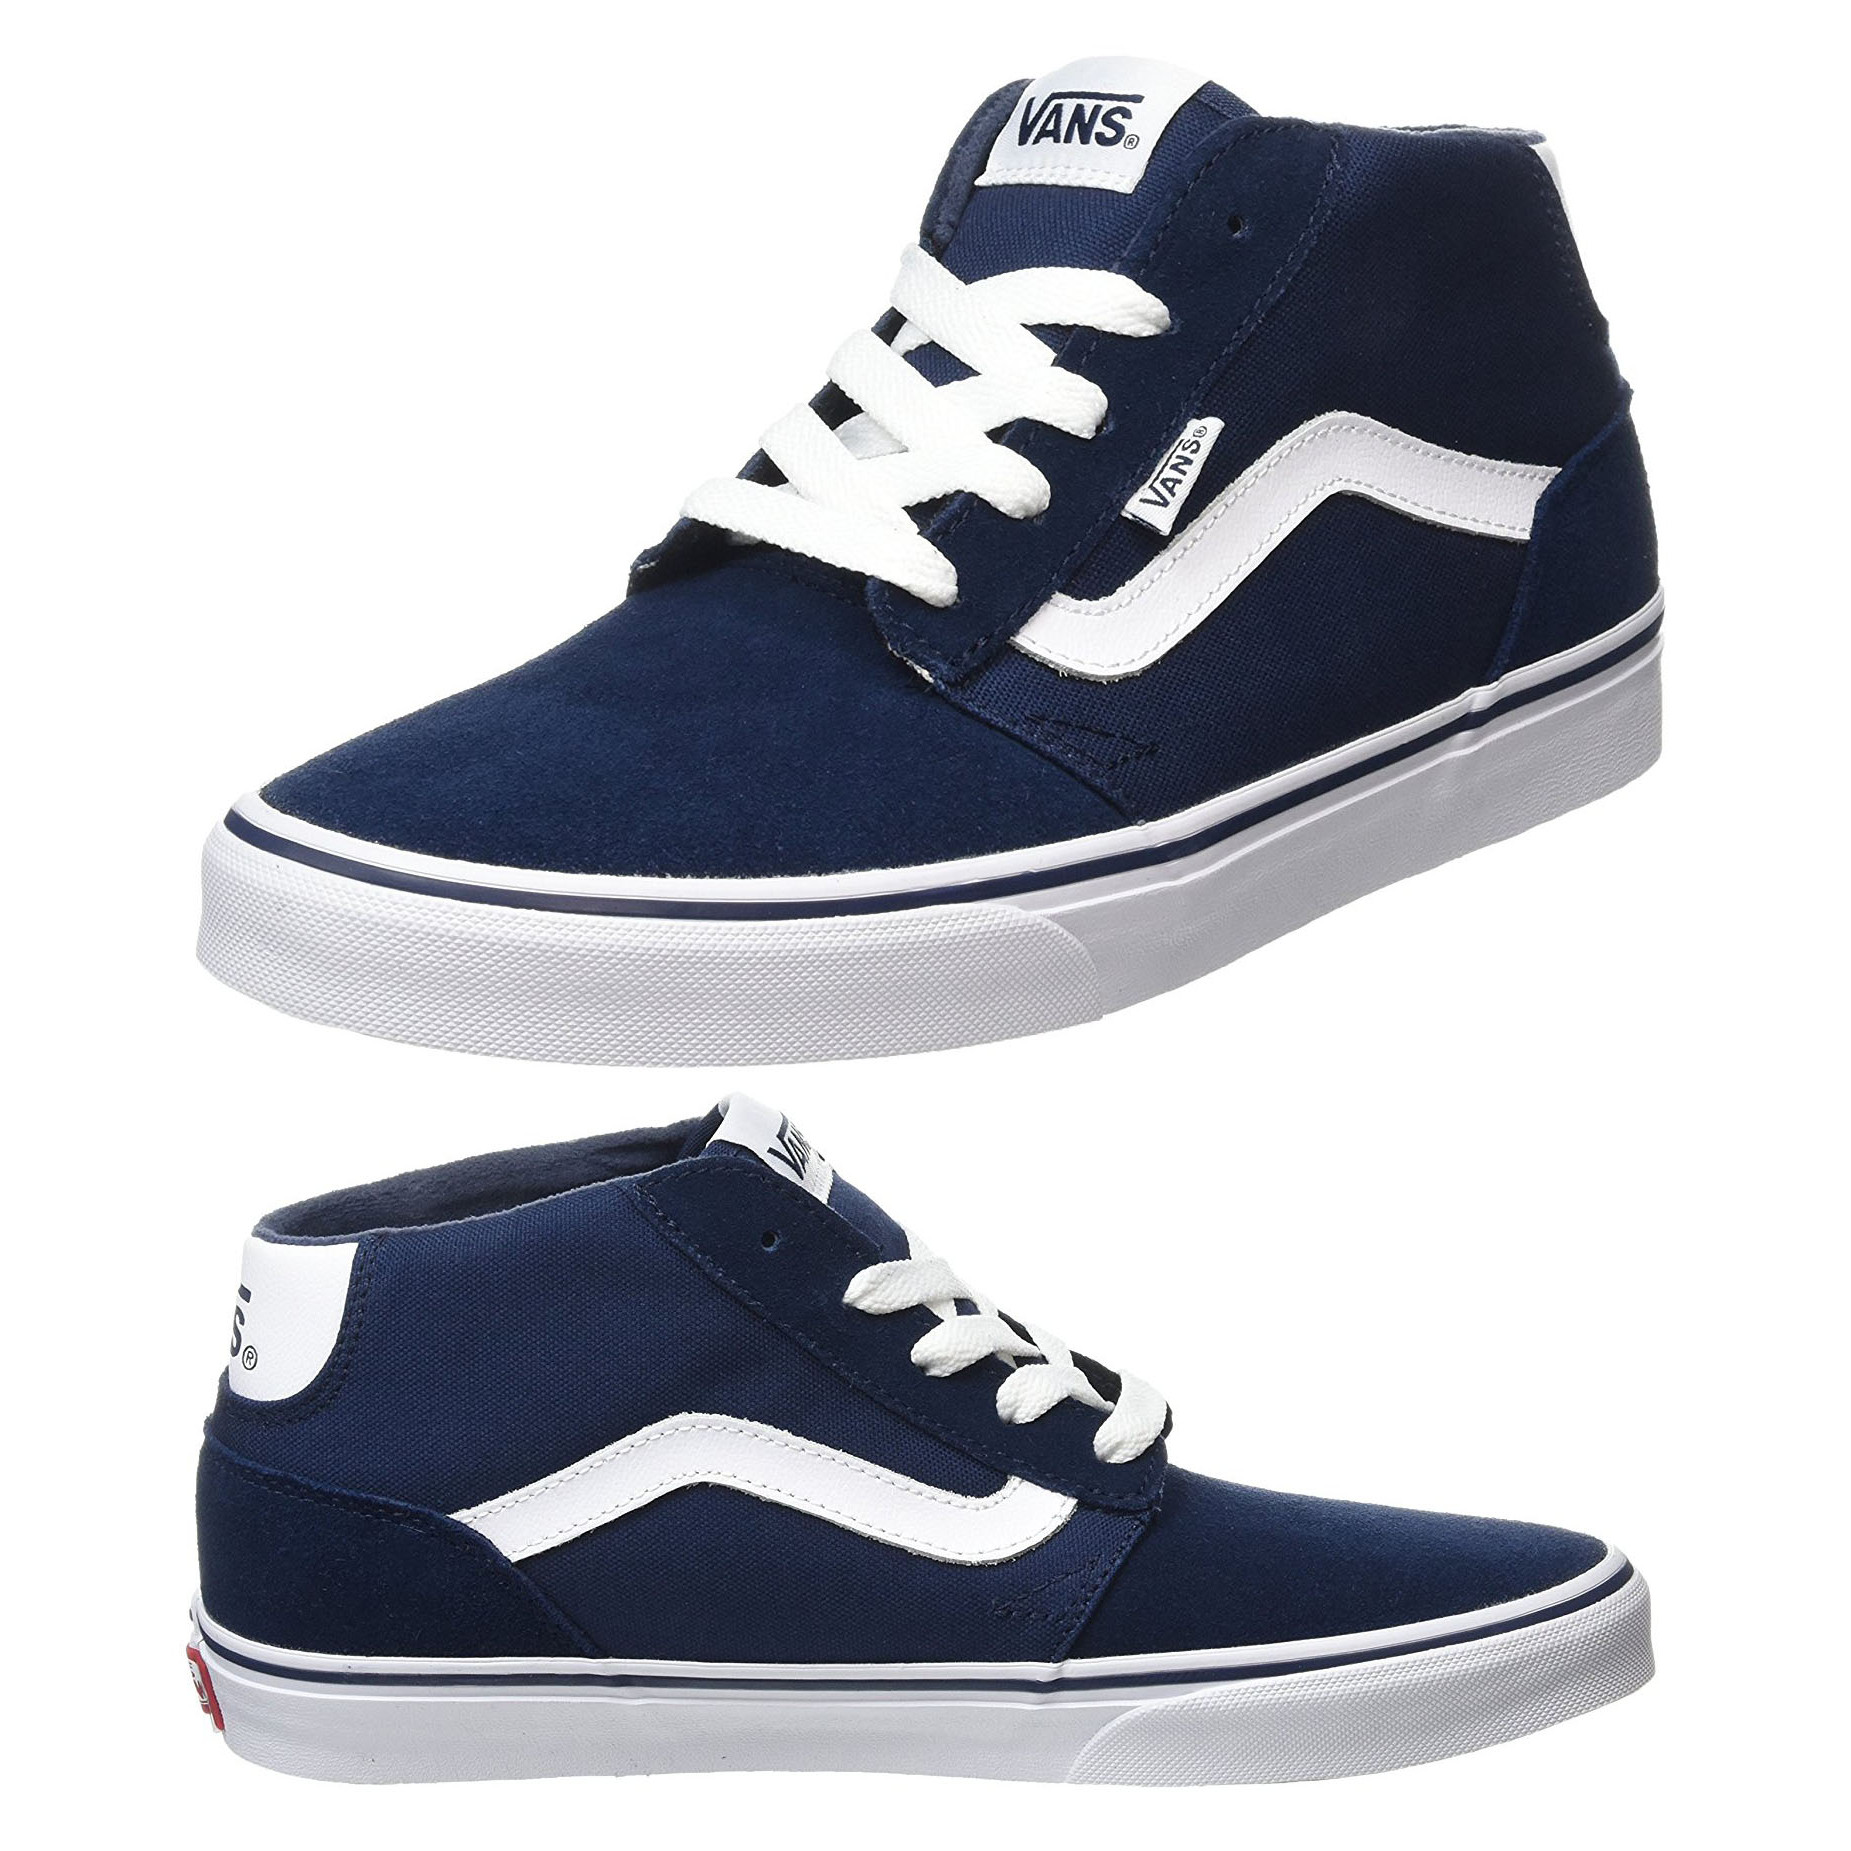 0f062a3856 Vans Men s Chapman Mid Stripe Suede Canvas Shoes Trainers Dress Blue ...